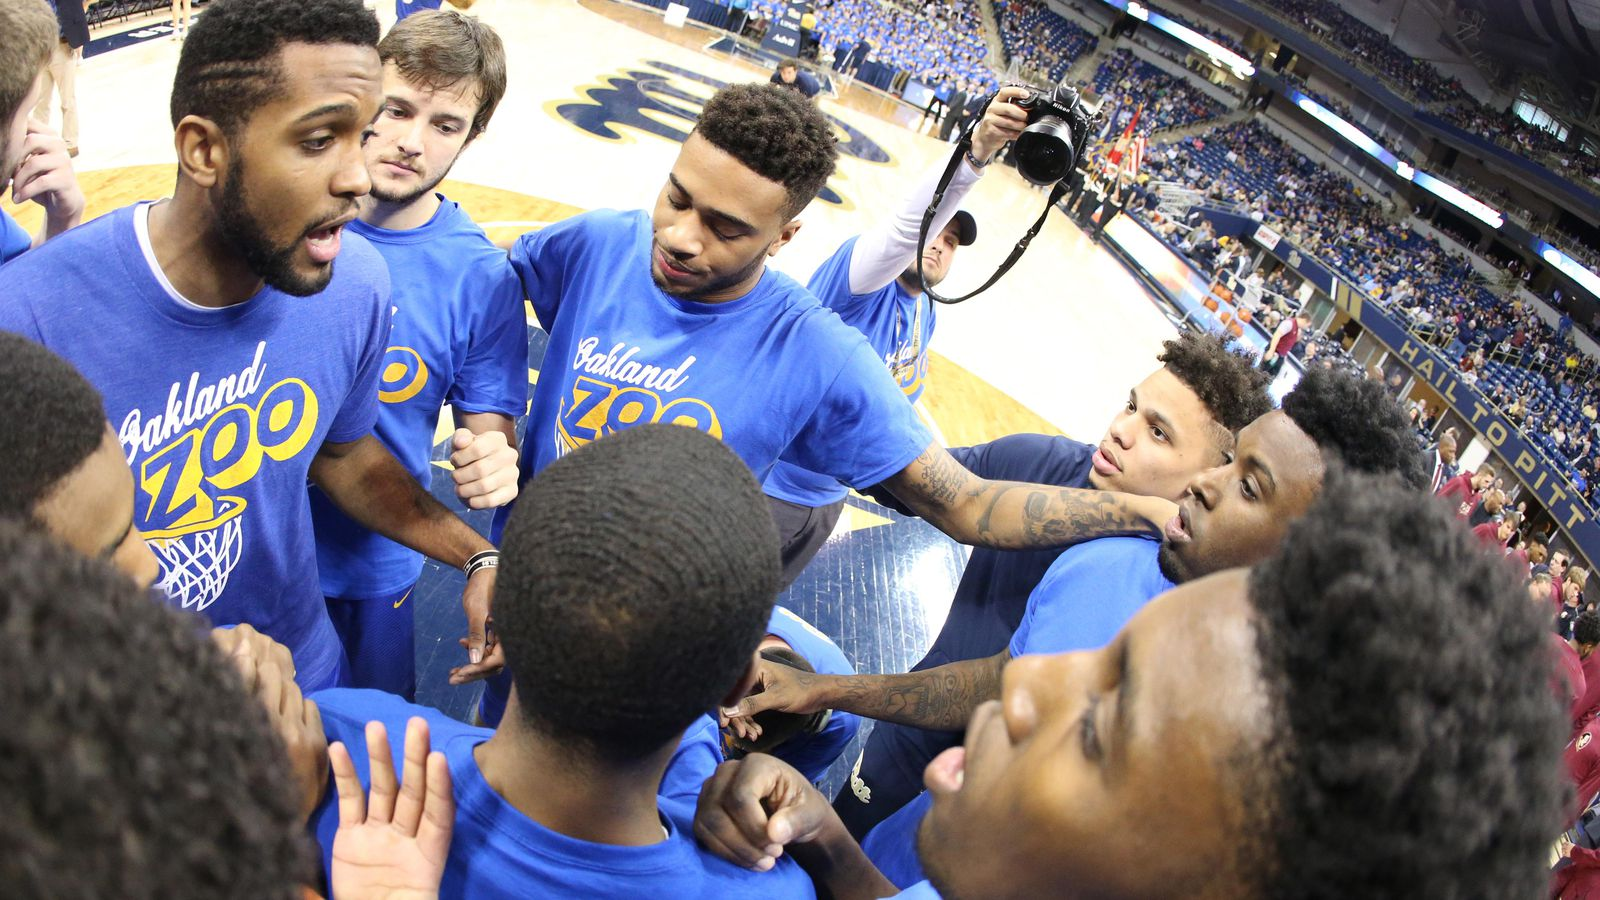 Usa-today-9885706.0